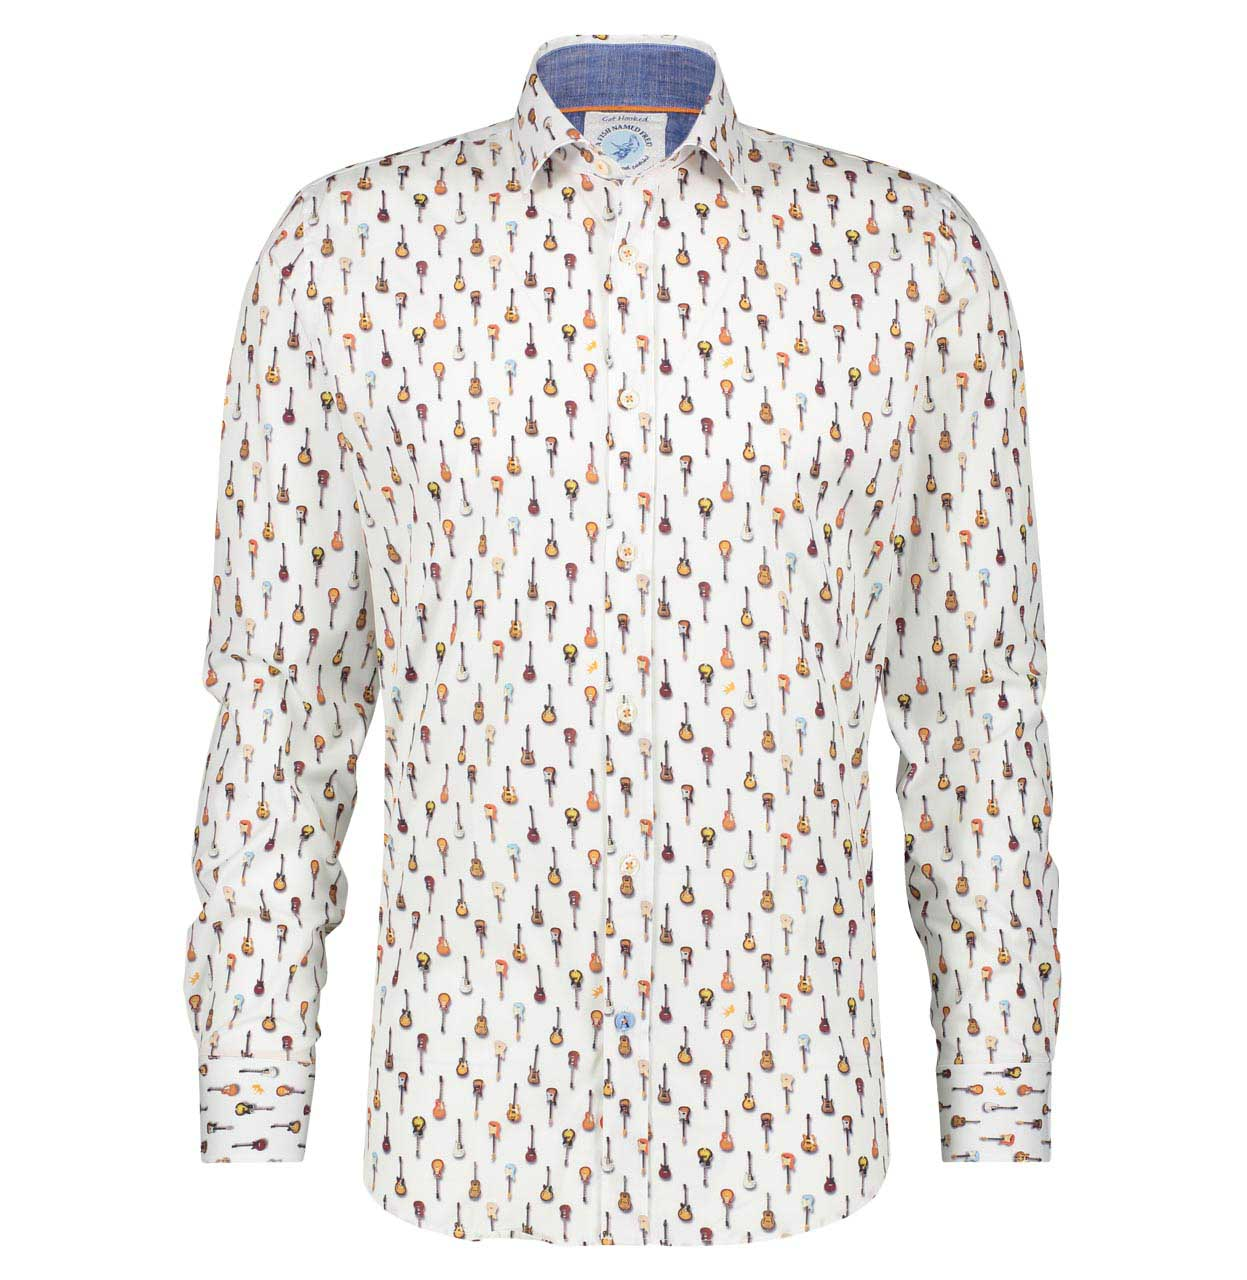 A Fish named Fred Shirt 22.01.016 White 22.01.016 wit Maat 3XL